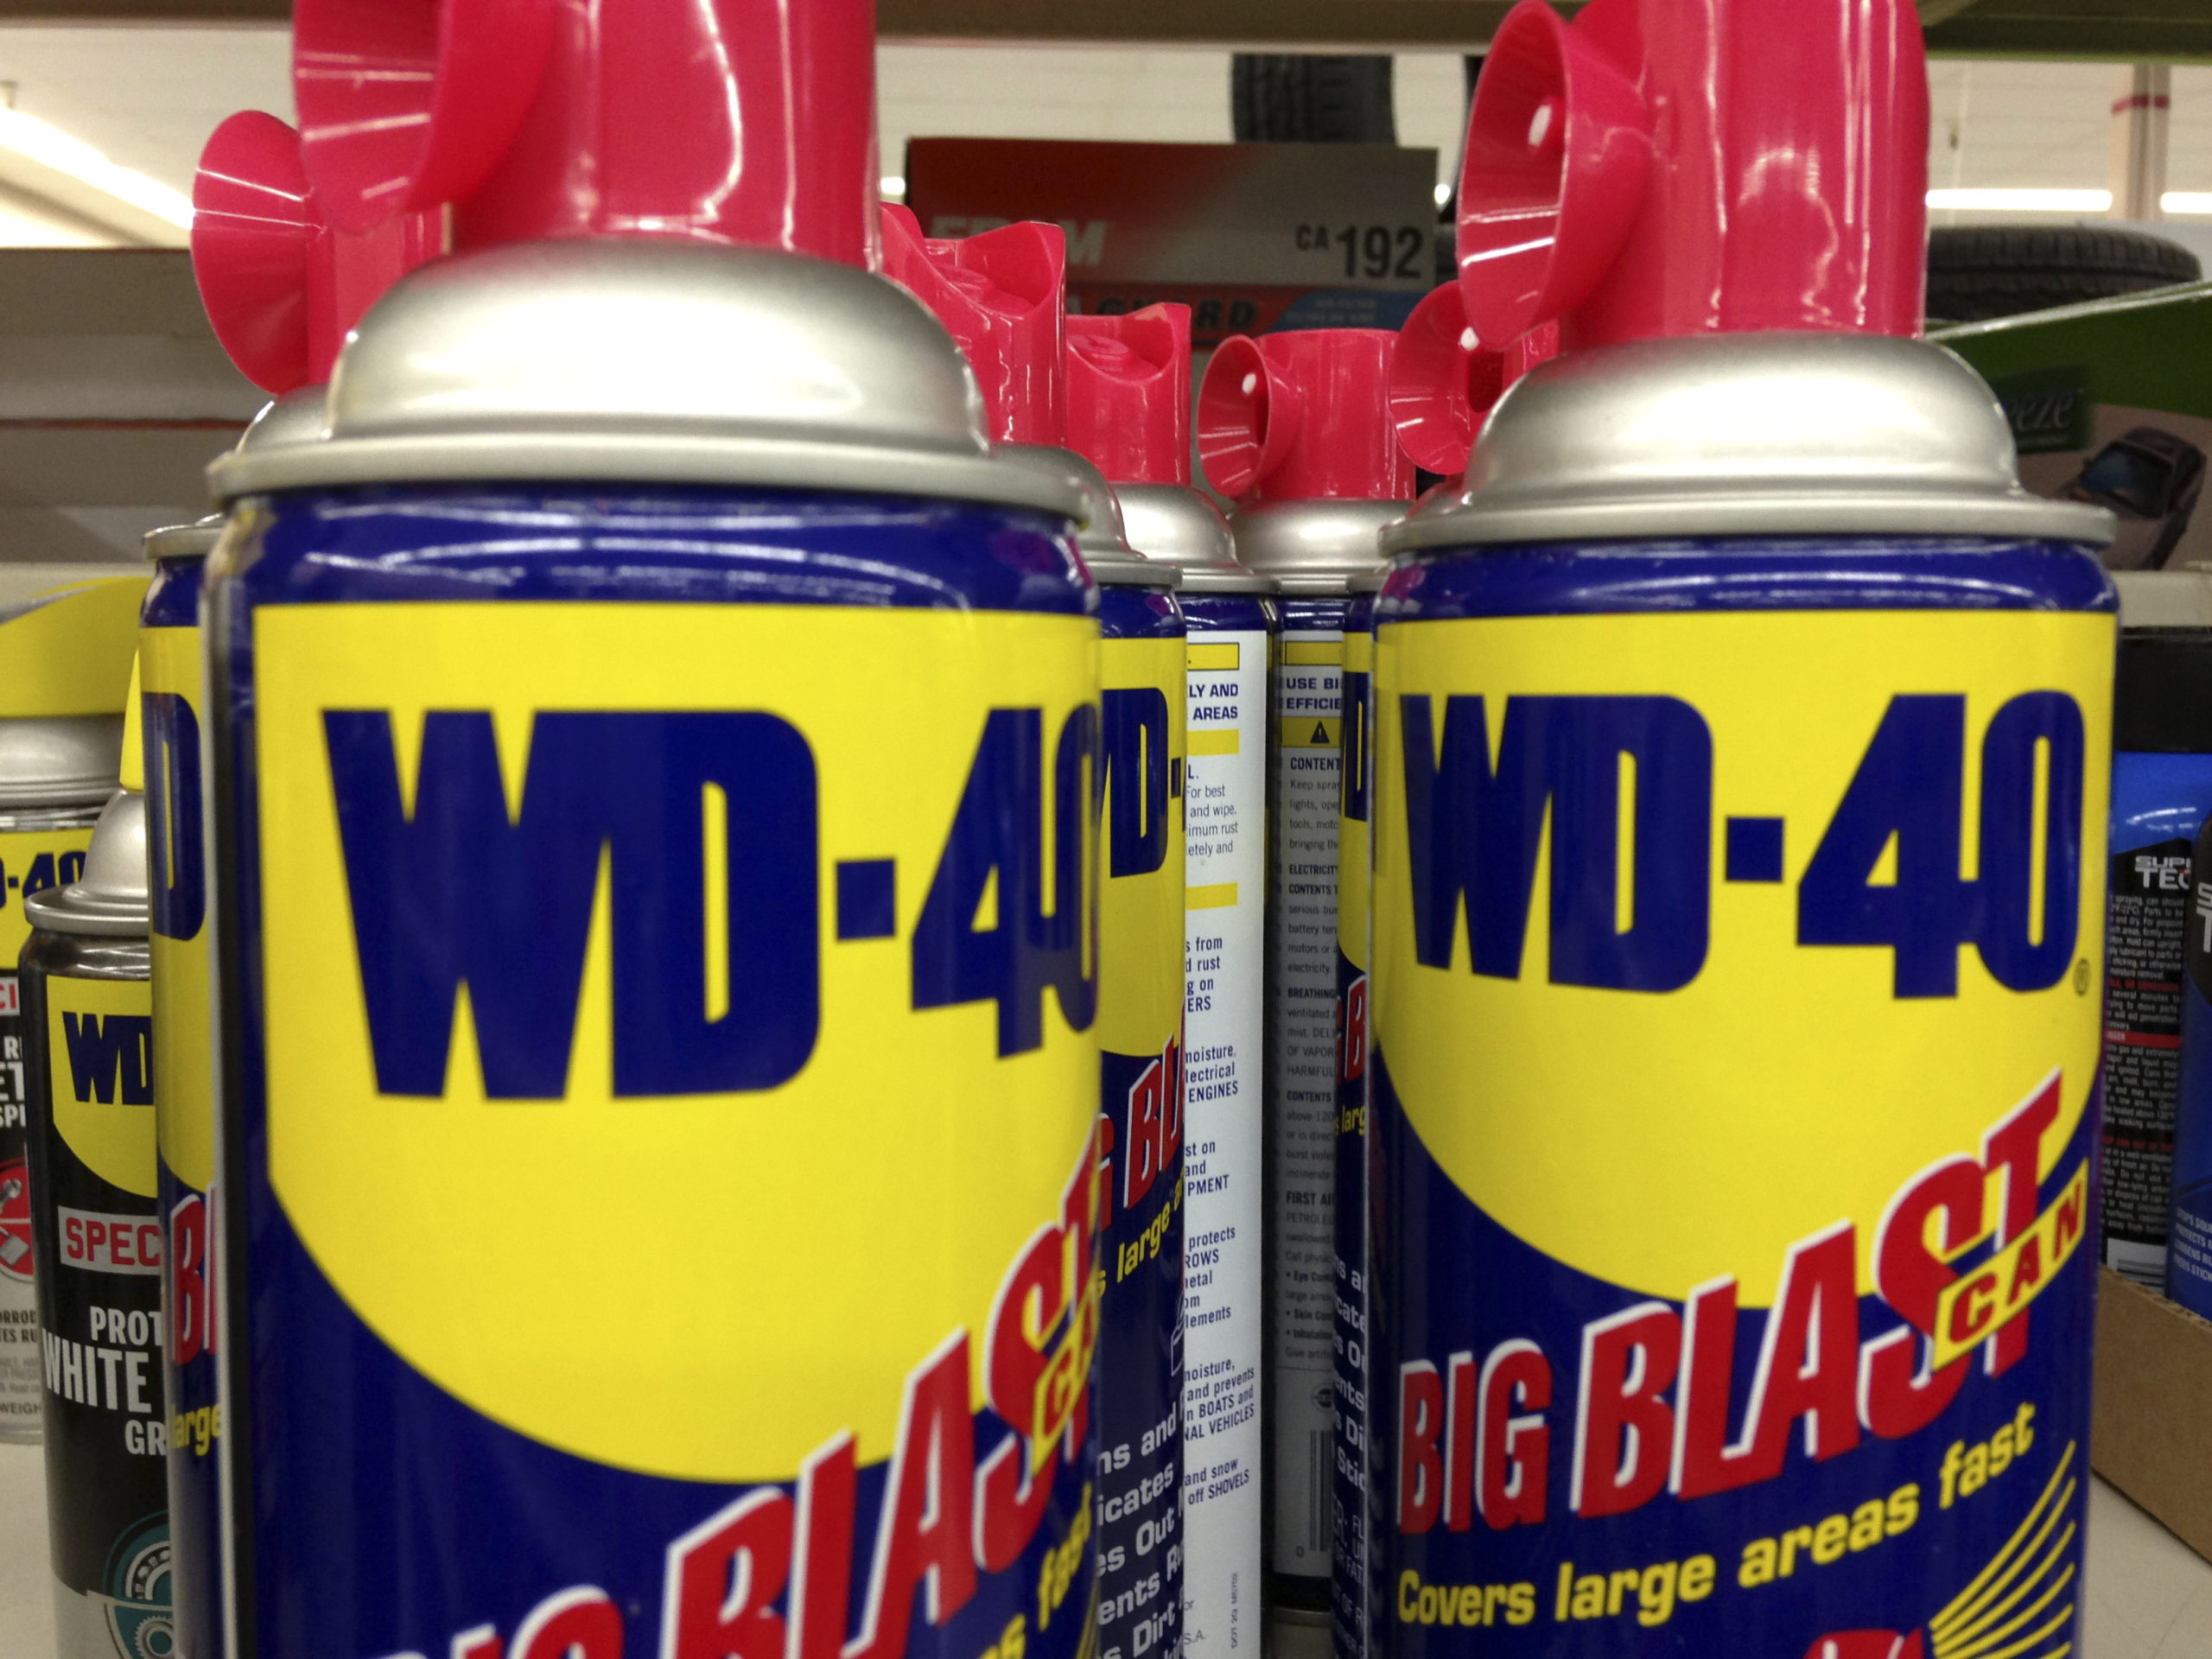 wd-40-ceo-reveals-3-of-the-craziest-ways-his-lubricating-spray-has-been-used